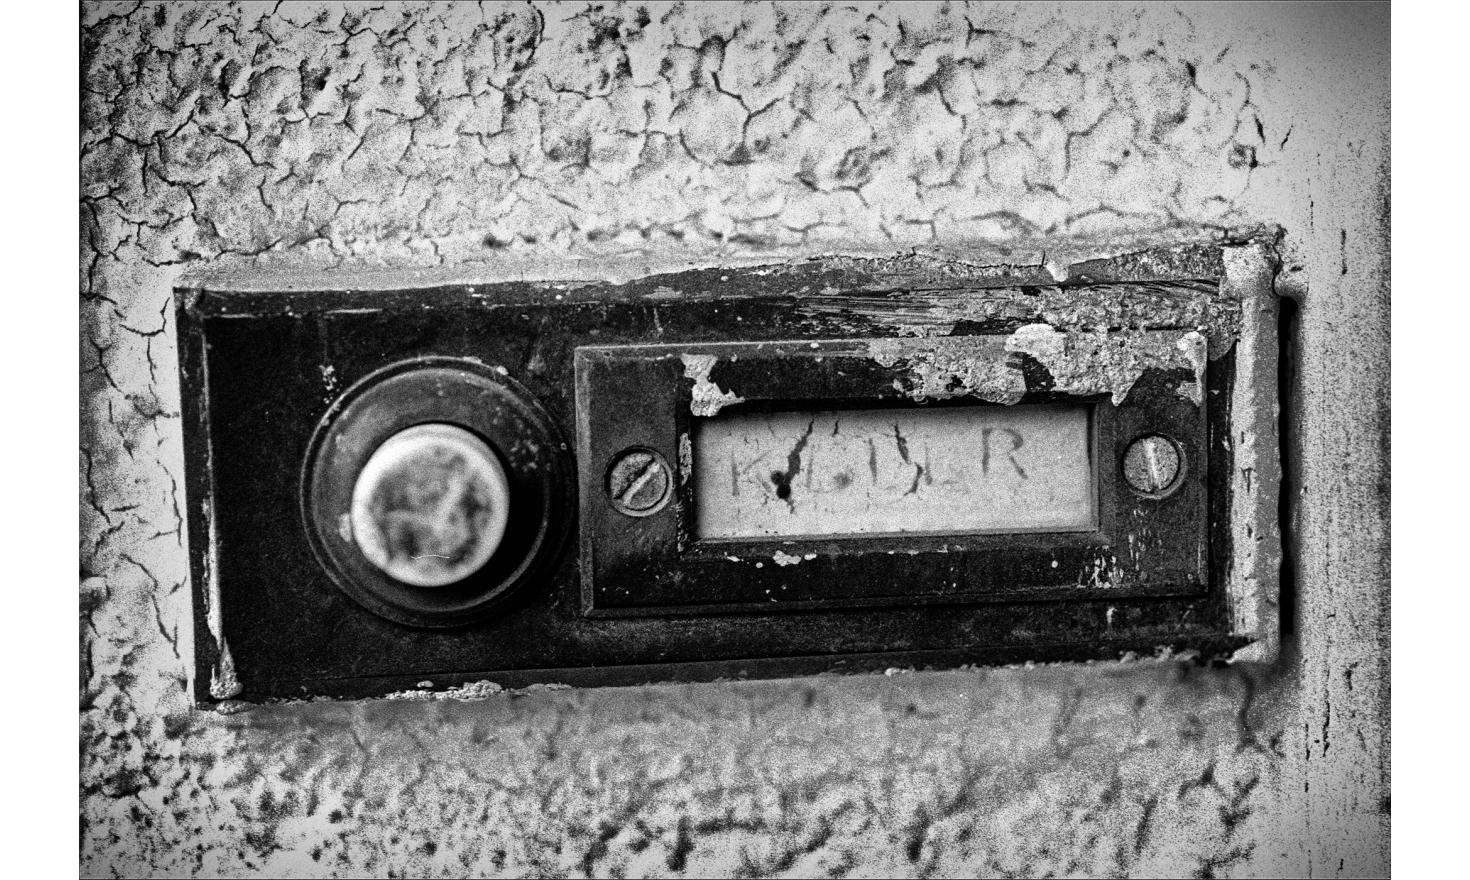 The doorbell of the house of igny, the same since they moved in 1964. Igny, May 2003.